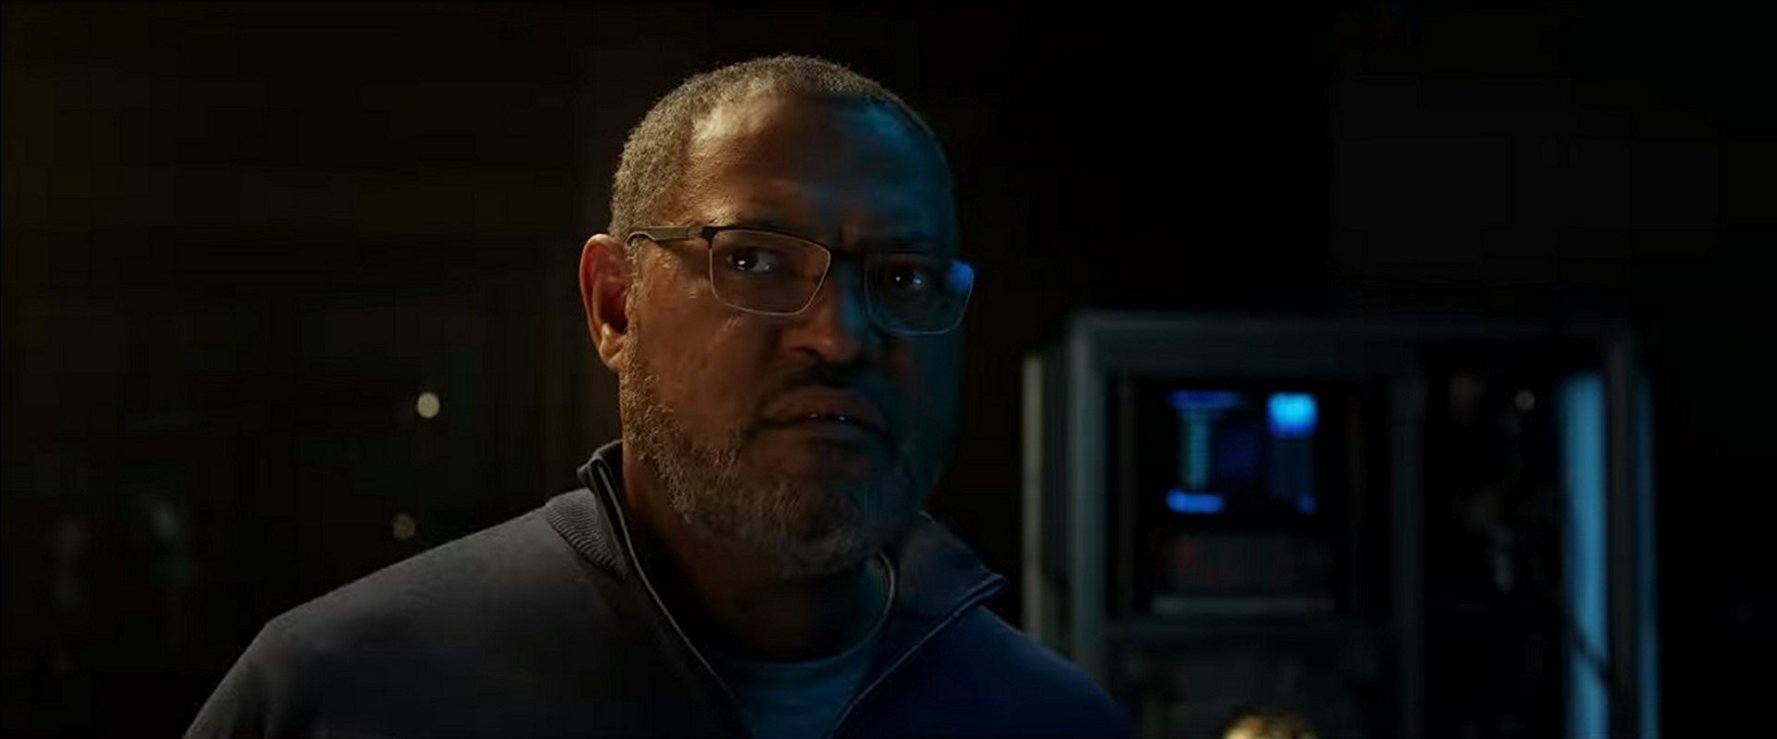 Laurence Fishburne interpreta al científico Bill Foster.